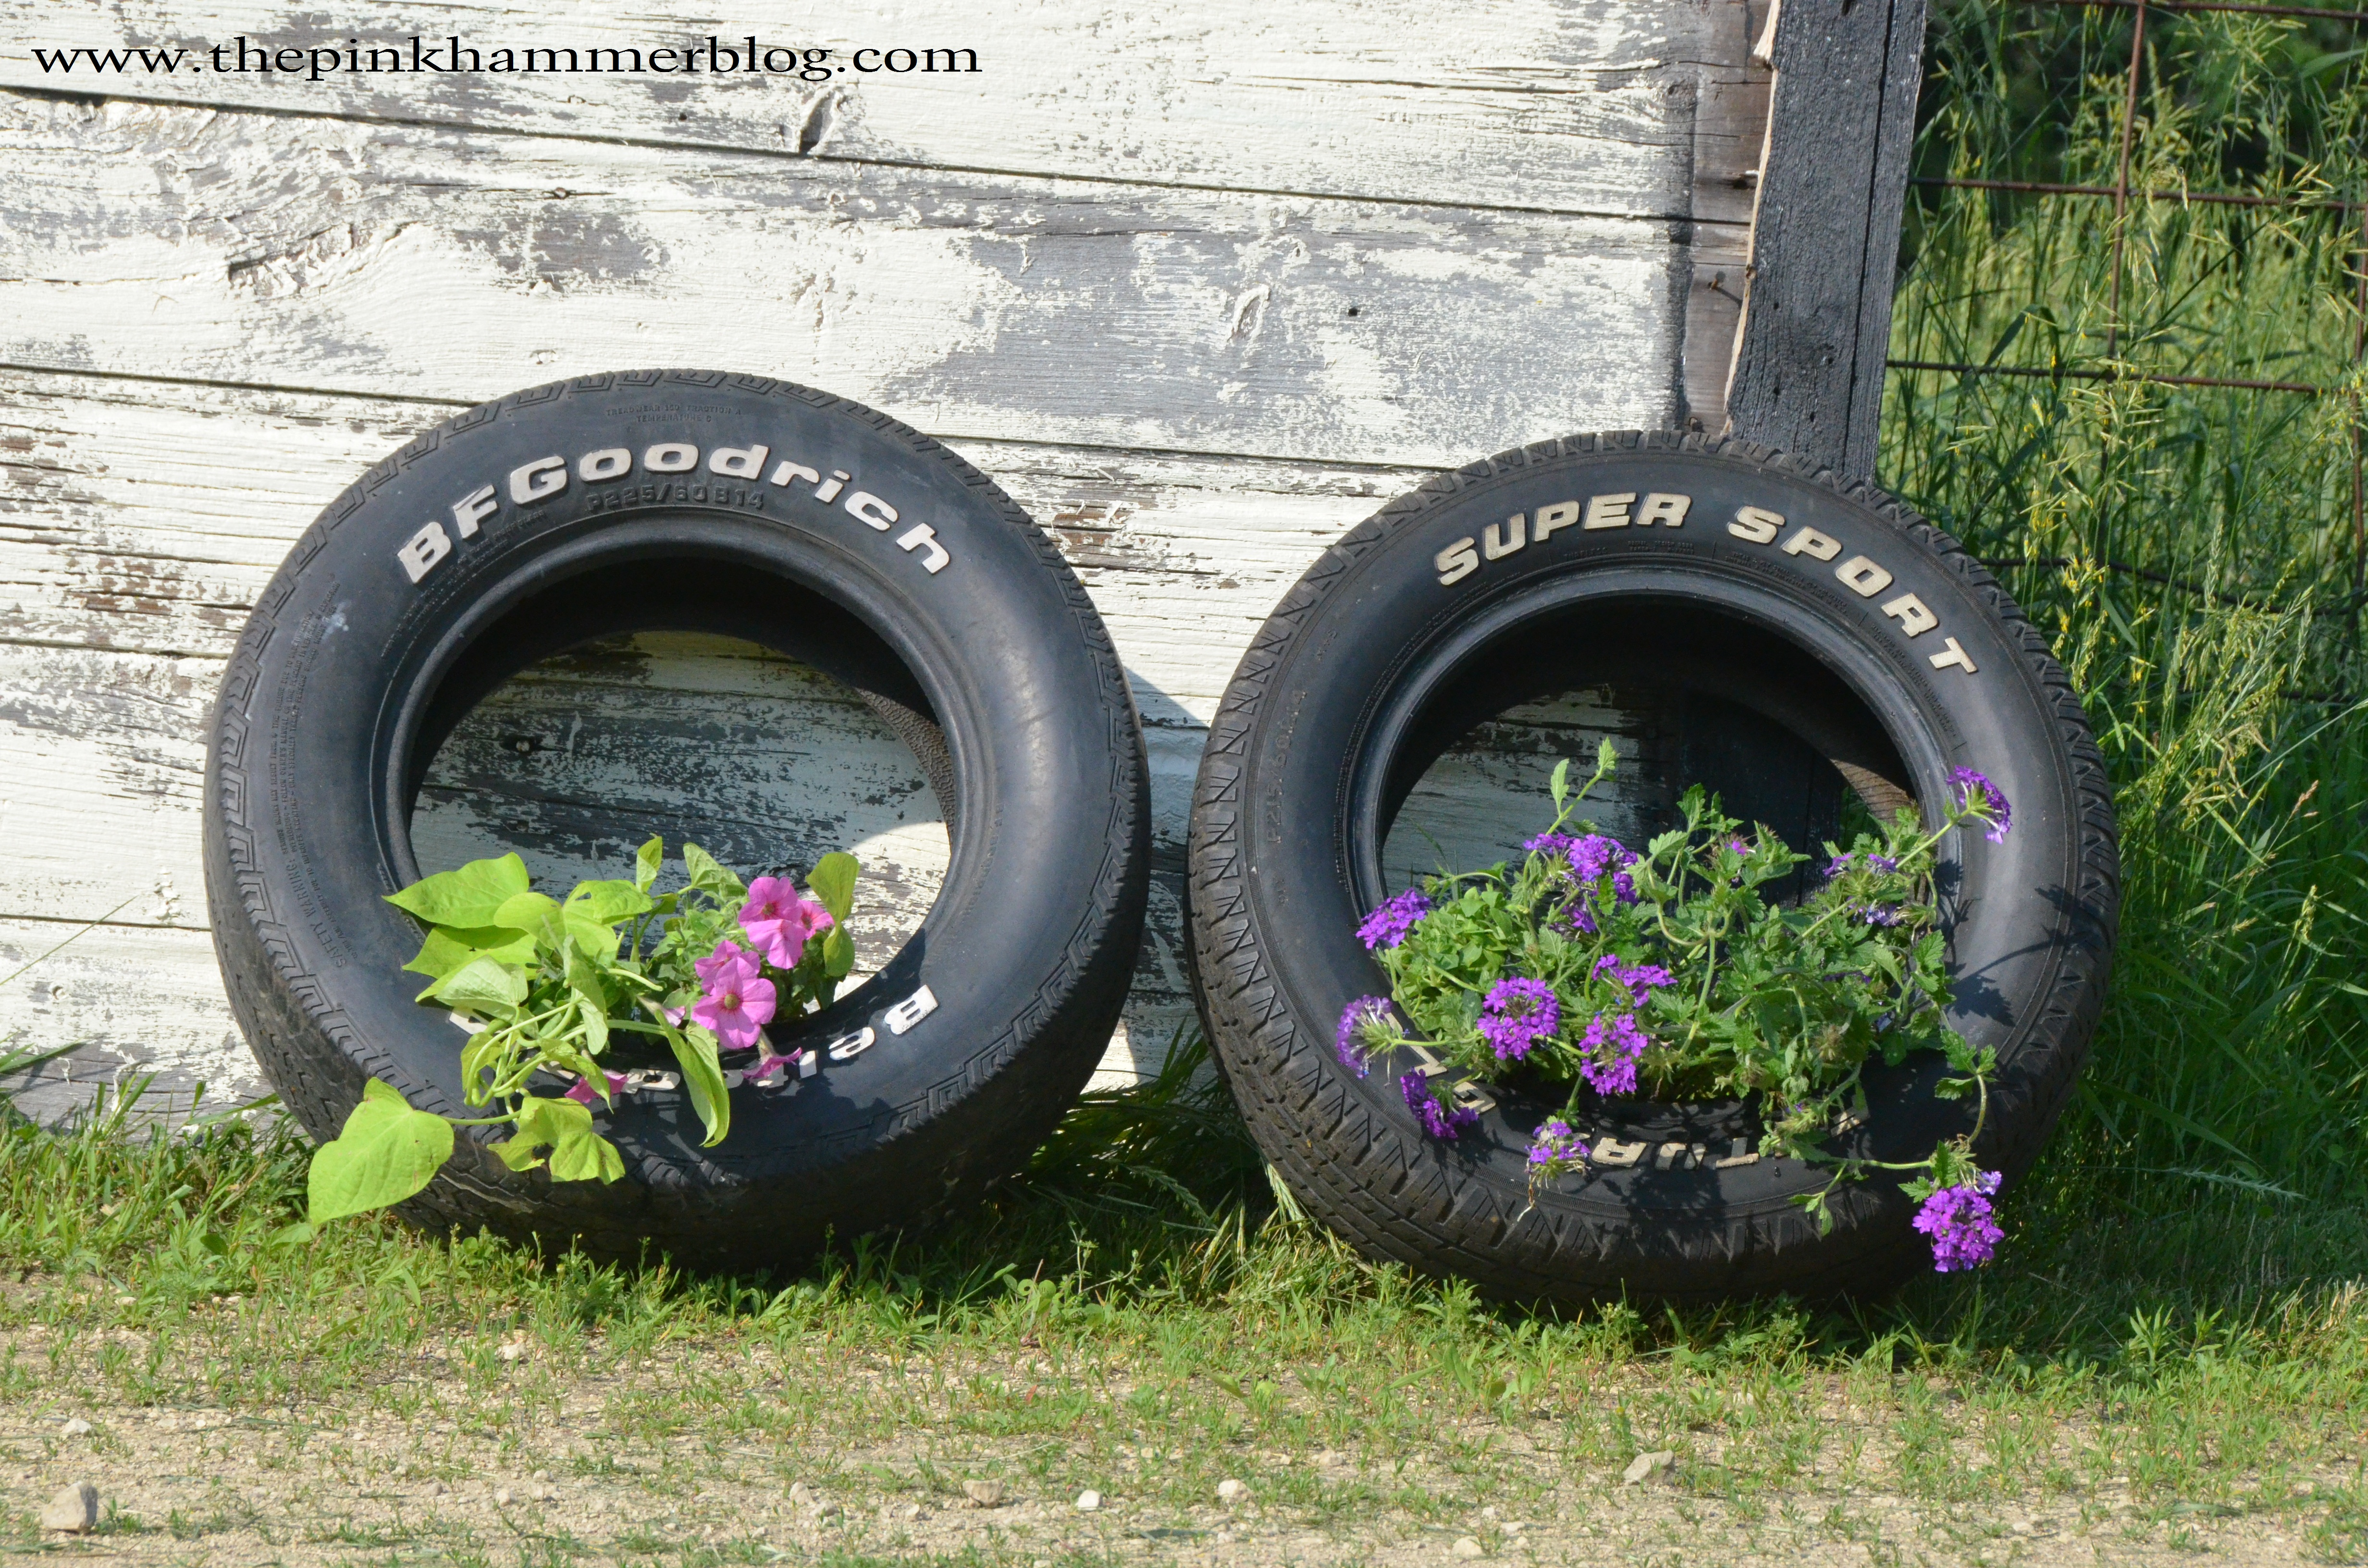 How to make tire planters the pink hammer blog for How to make a tire garden